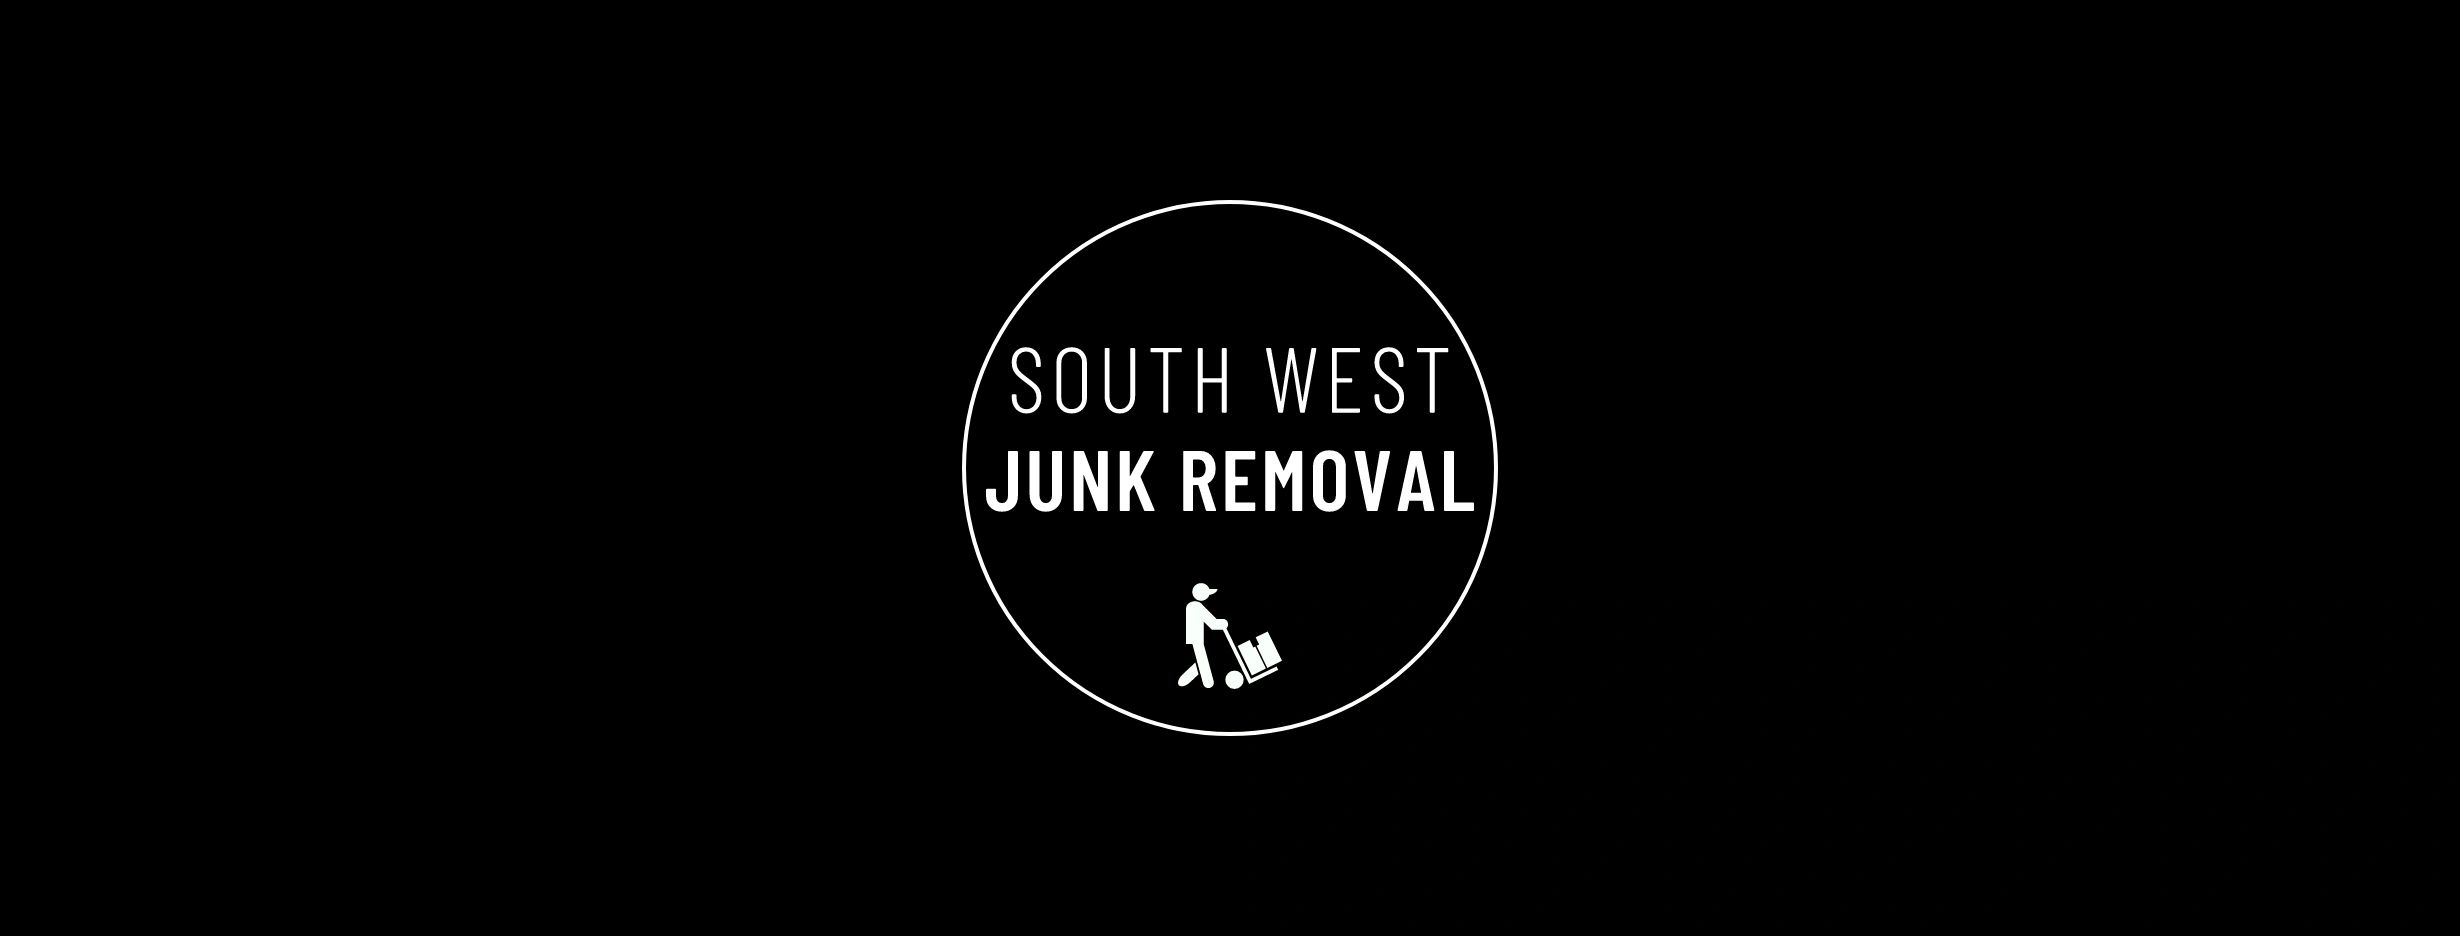 South West Junk Removal Logo